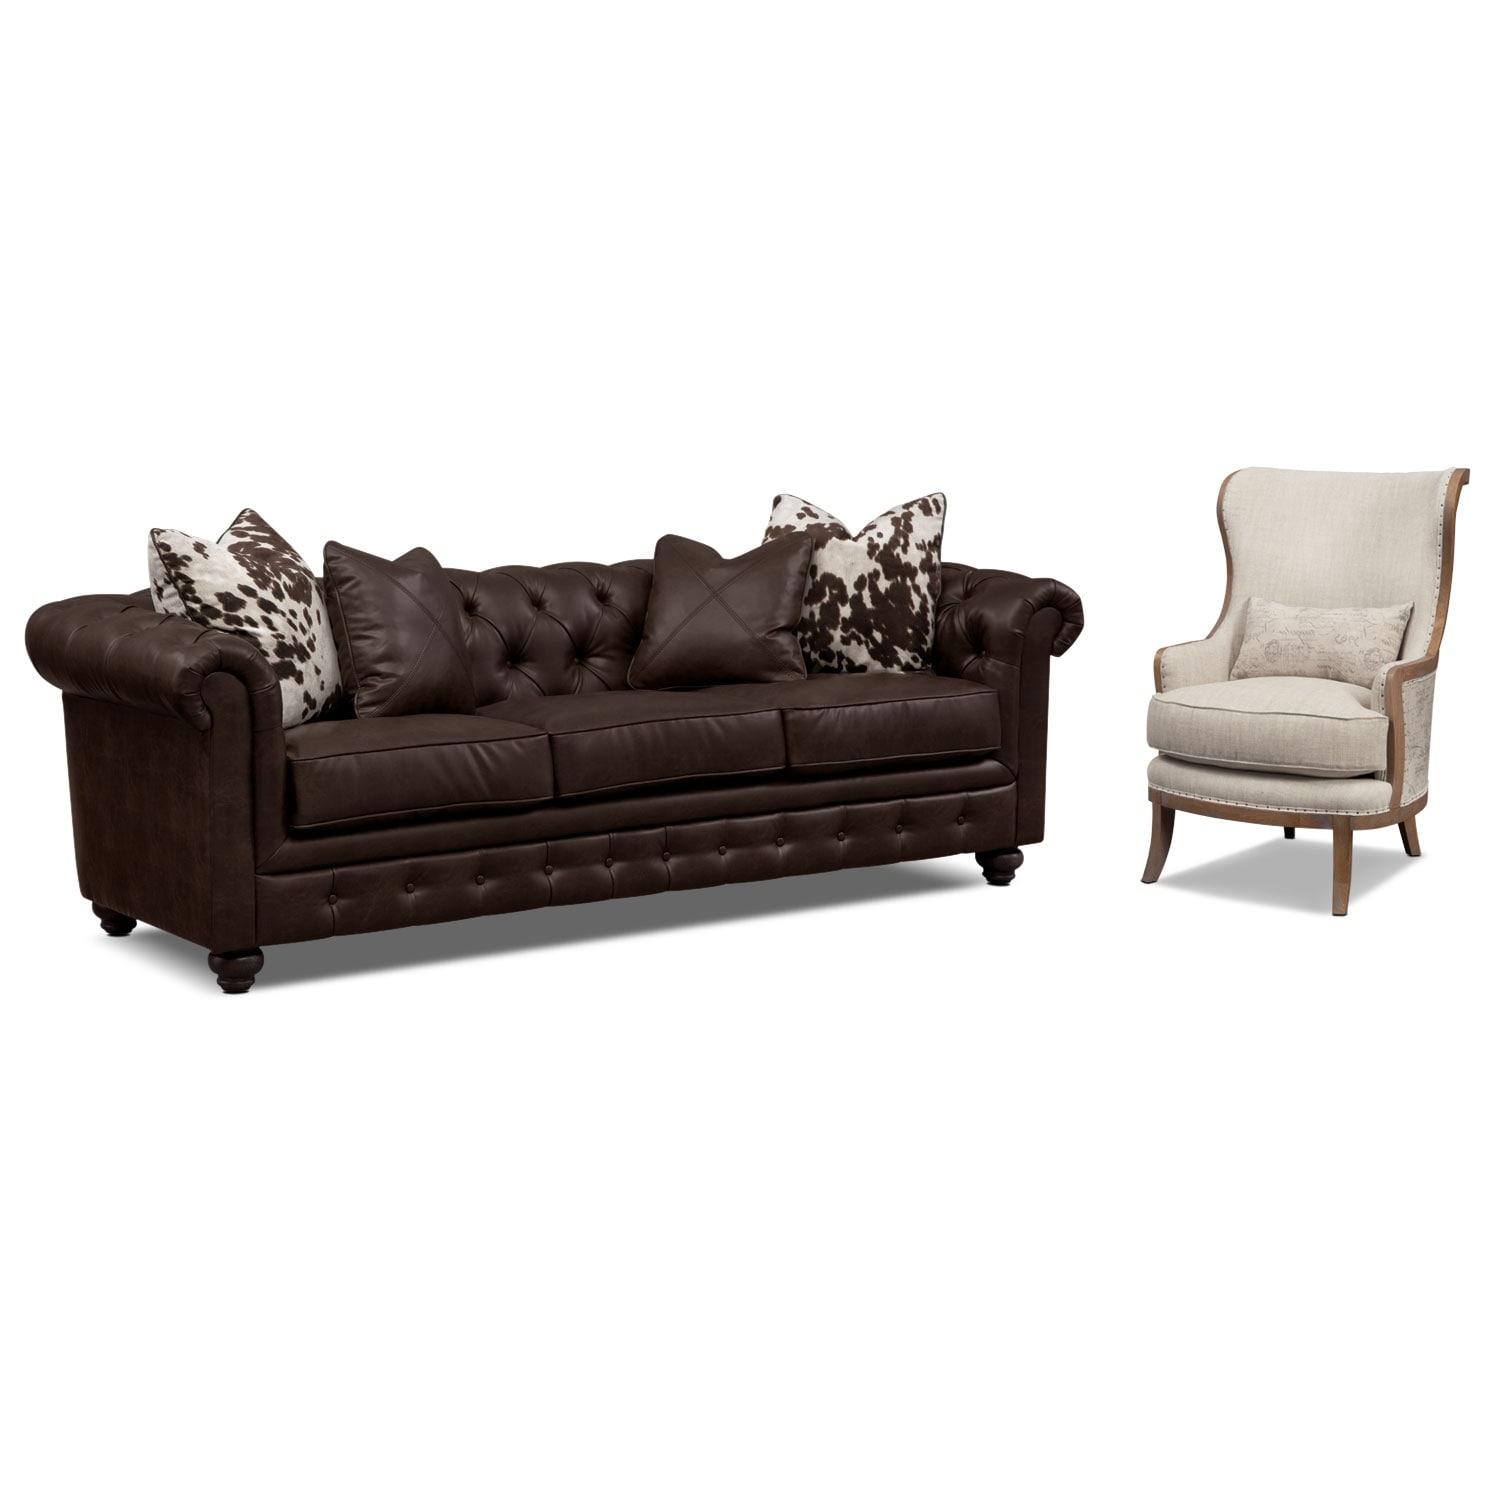 Living Room Furniture - Madeline Sofa and Accent Chair Set - Chocolate